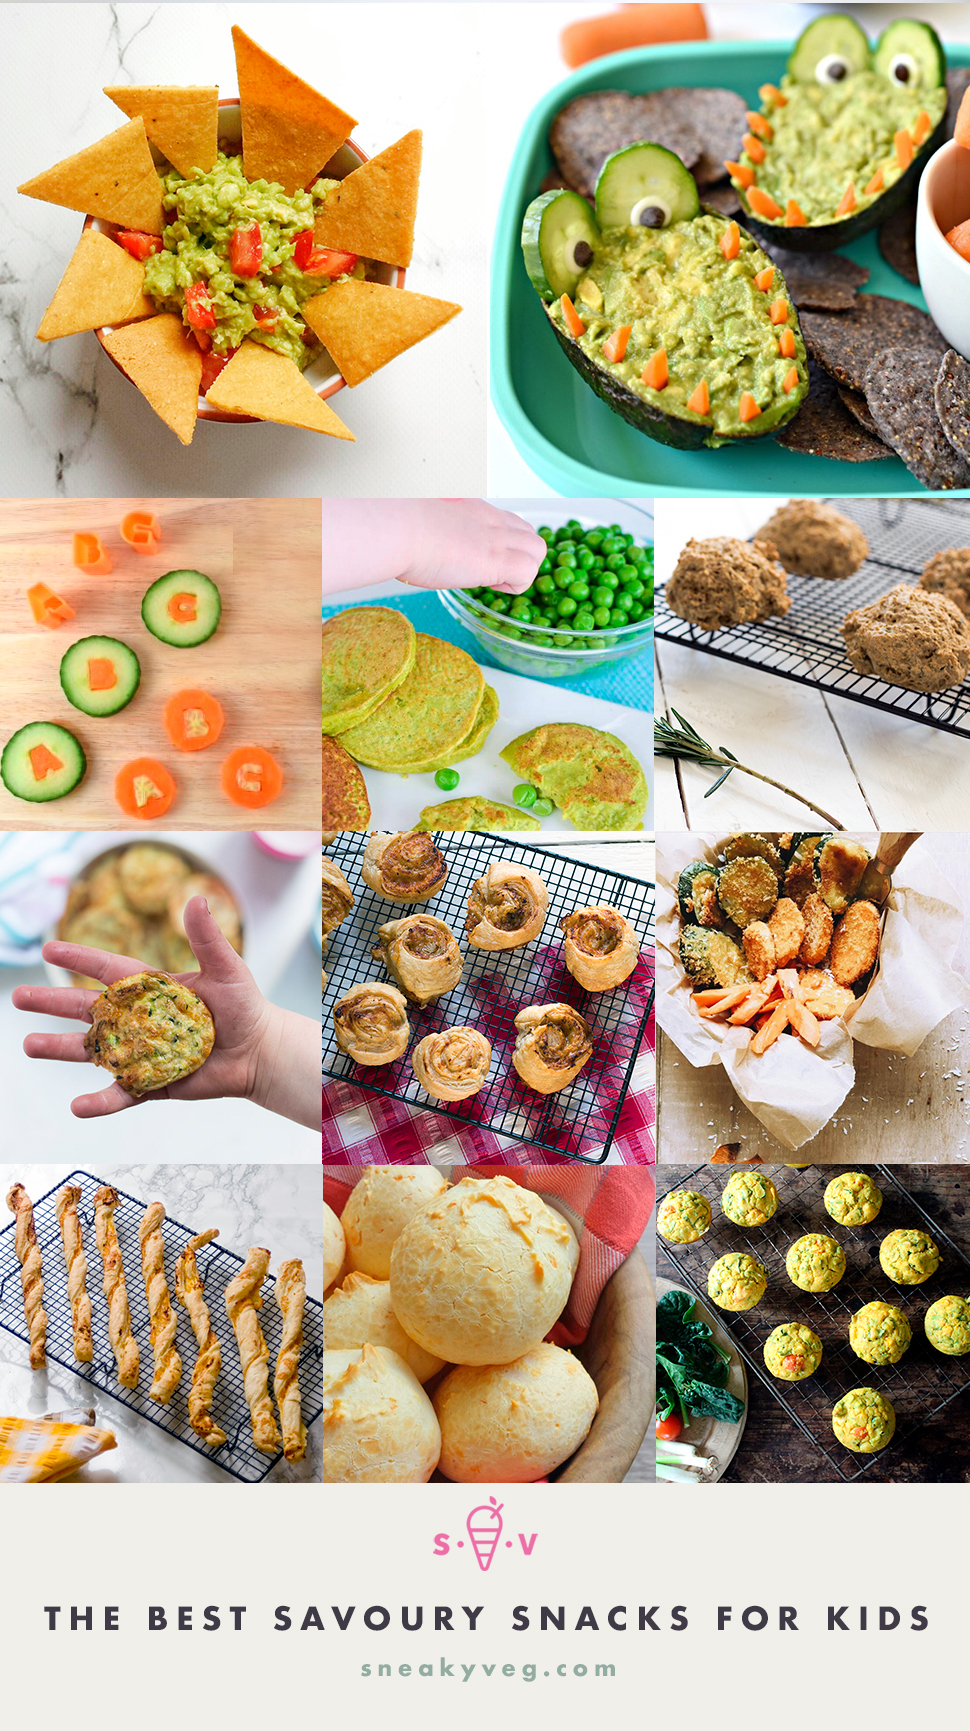 The best recipes for healthy savoury snacks for kids